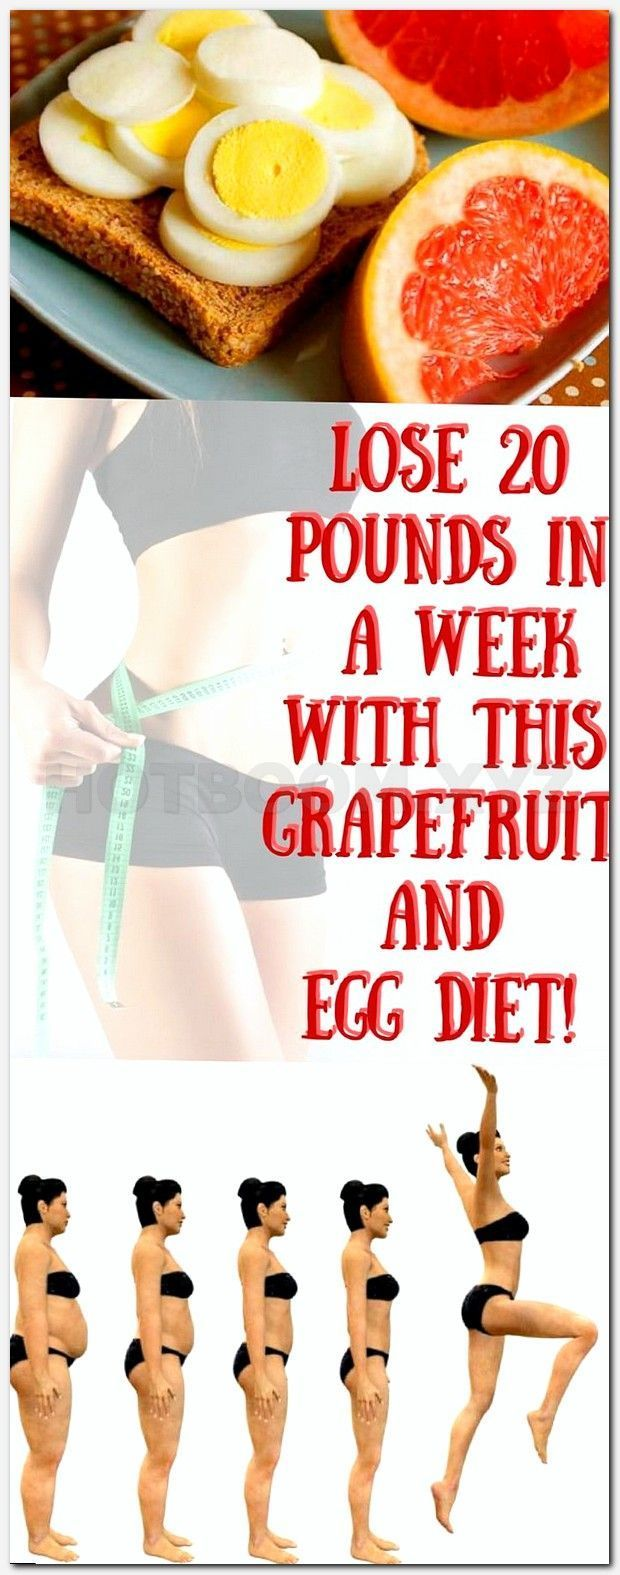 Can you lose weight in 24 days